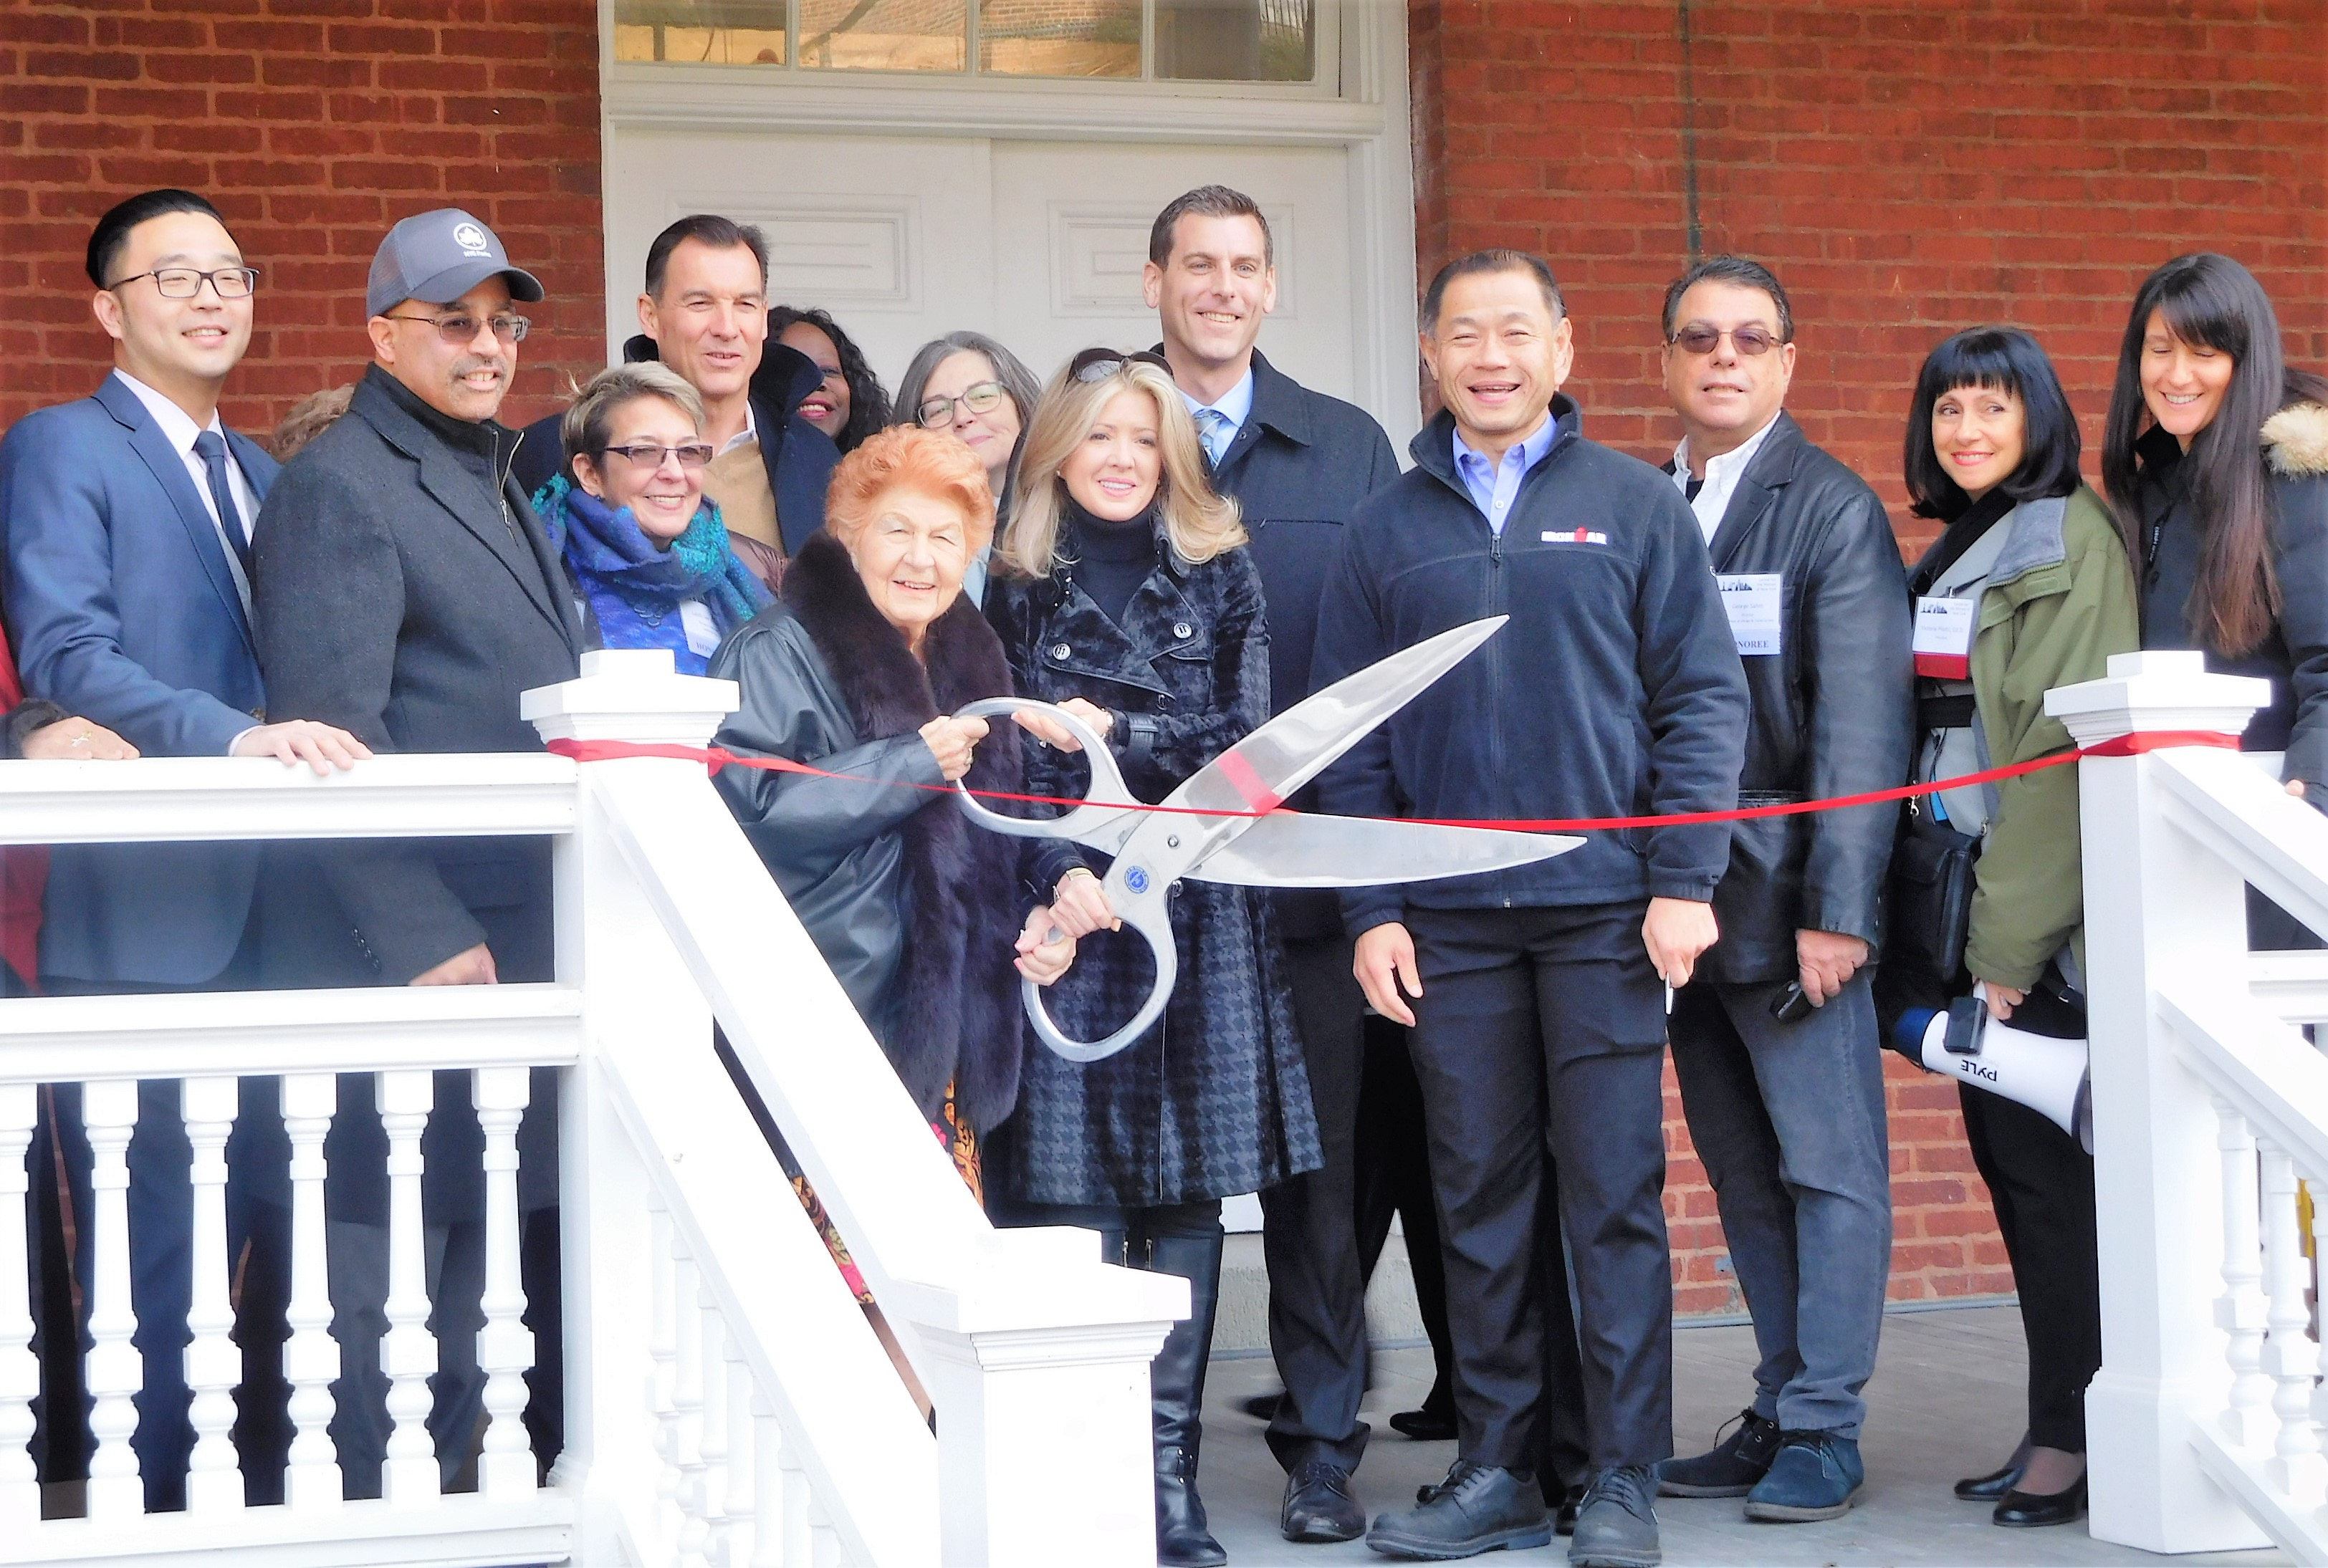 On December 8, 2019, Assemblyman Braunstein attended the Center for the Women of New York Fort Totten Grand Opening and Ribbon-Cutting Ceremony.